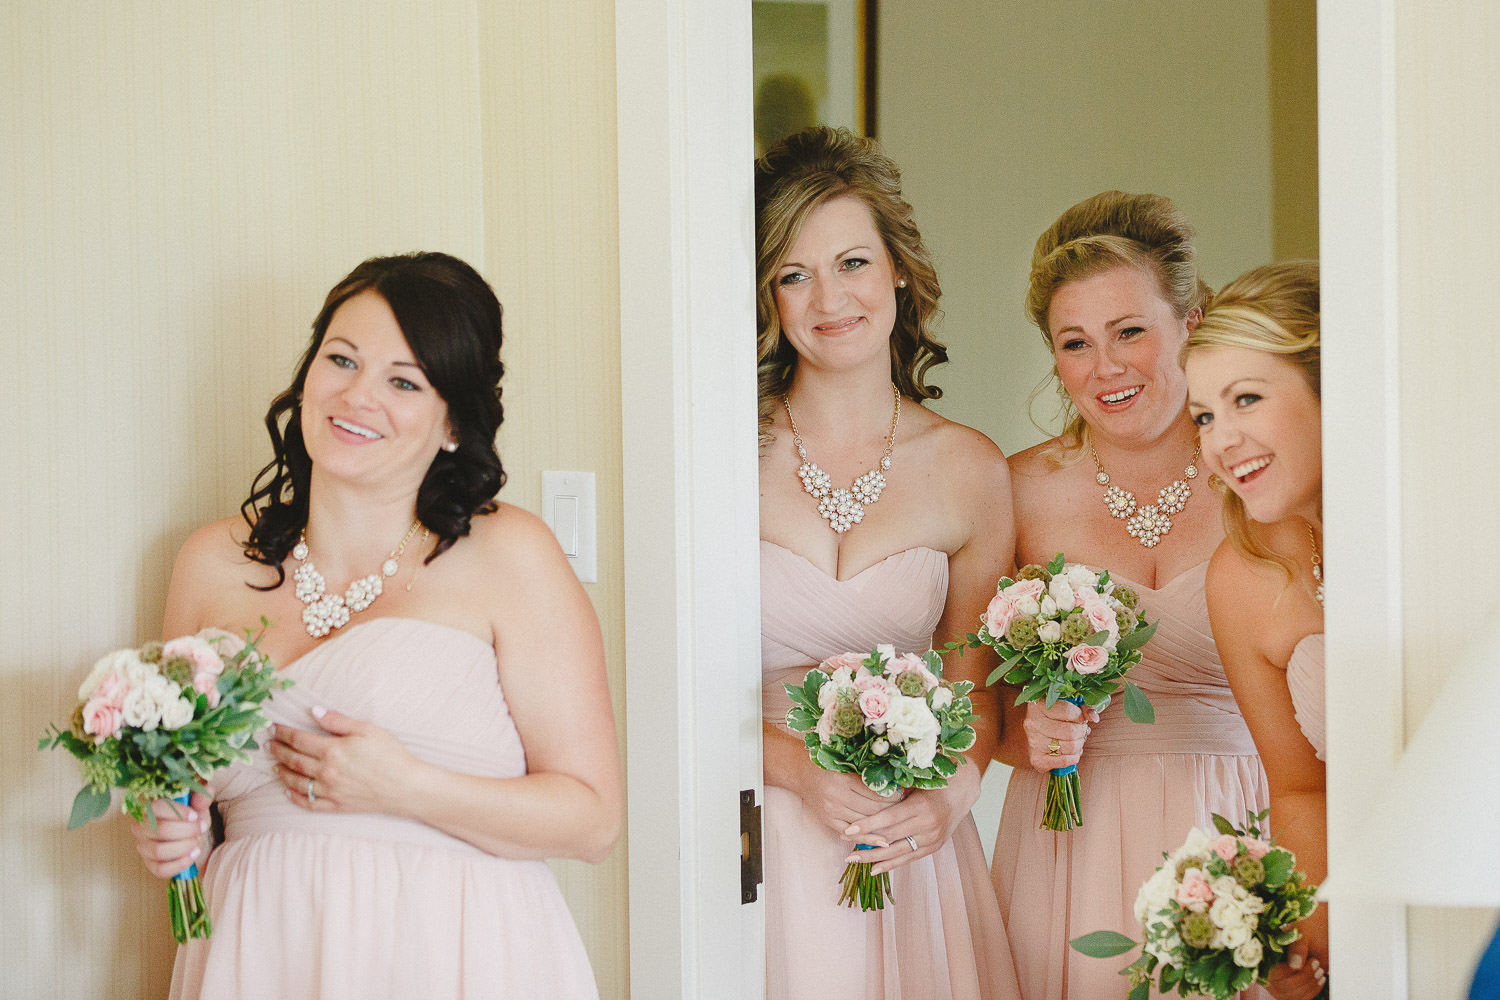 Bridesmaids react to seeing bride in dress